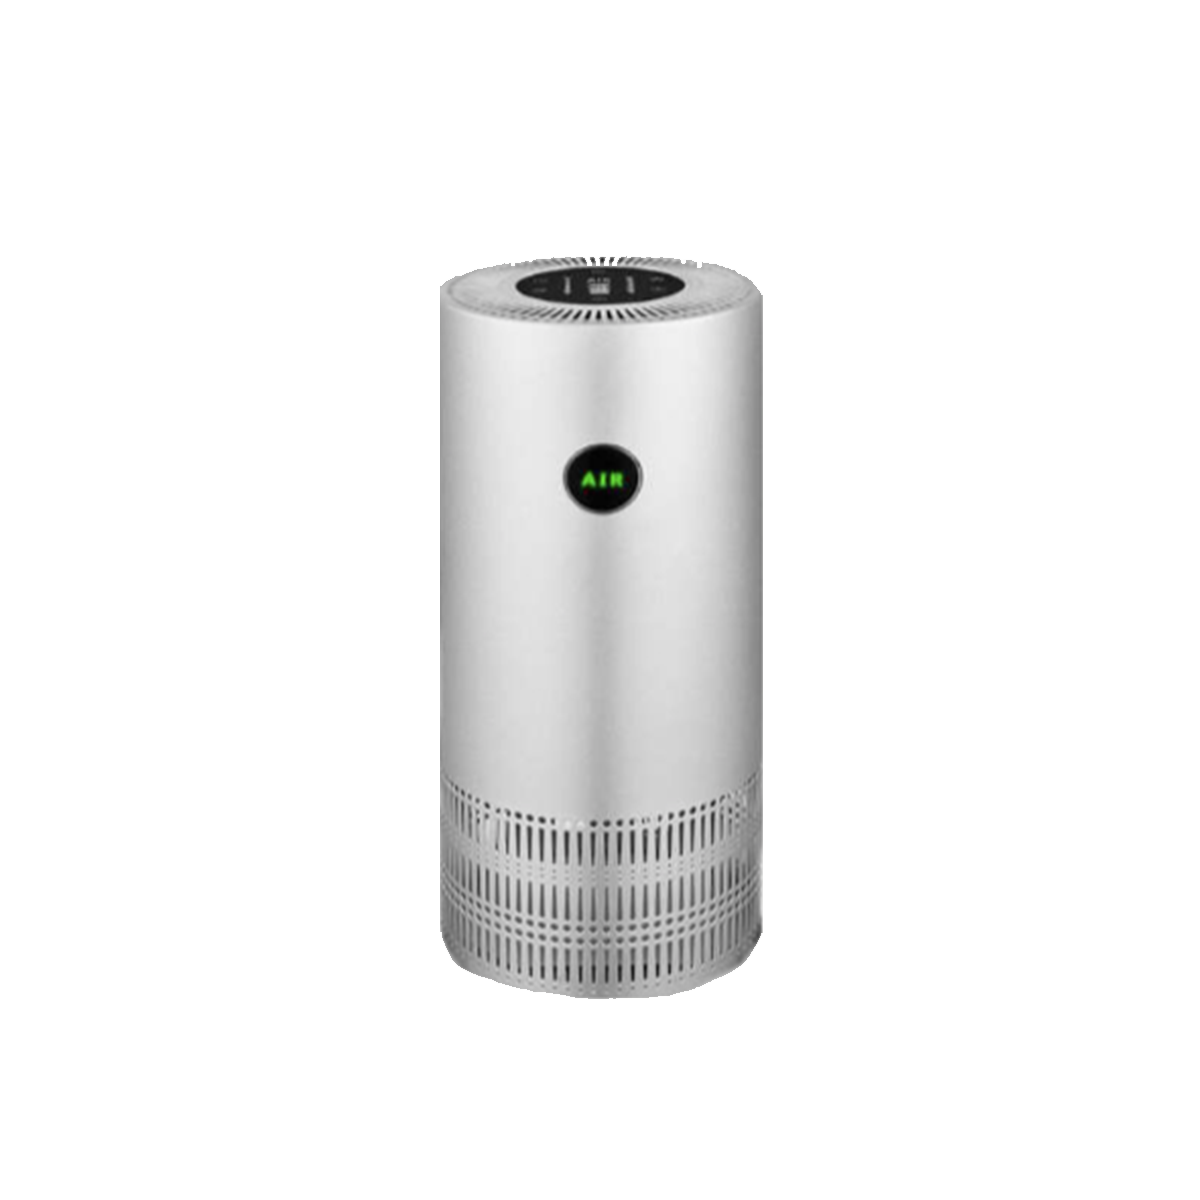 Silver Stream®️ UV Air Purifier comes with 9 stage purification with 4 filters including the nano-activated carbon filter for stronger absorption.  Silver Stream®️ UV Air Purifier absorbs odors with the coconut shell honeycomb technology efficiently. Coconut shell active carbon sticks to reticular structure due to unique technology. It has significant effect on absorbing smell, organic compounds, formaldehyde, haze in the air. It has a 5 micron filter as well as a TiO2 photo catalyst filters.